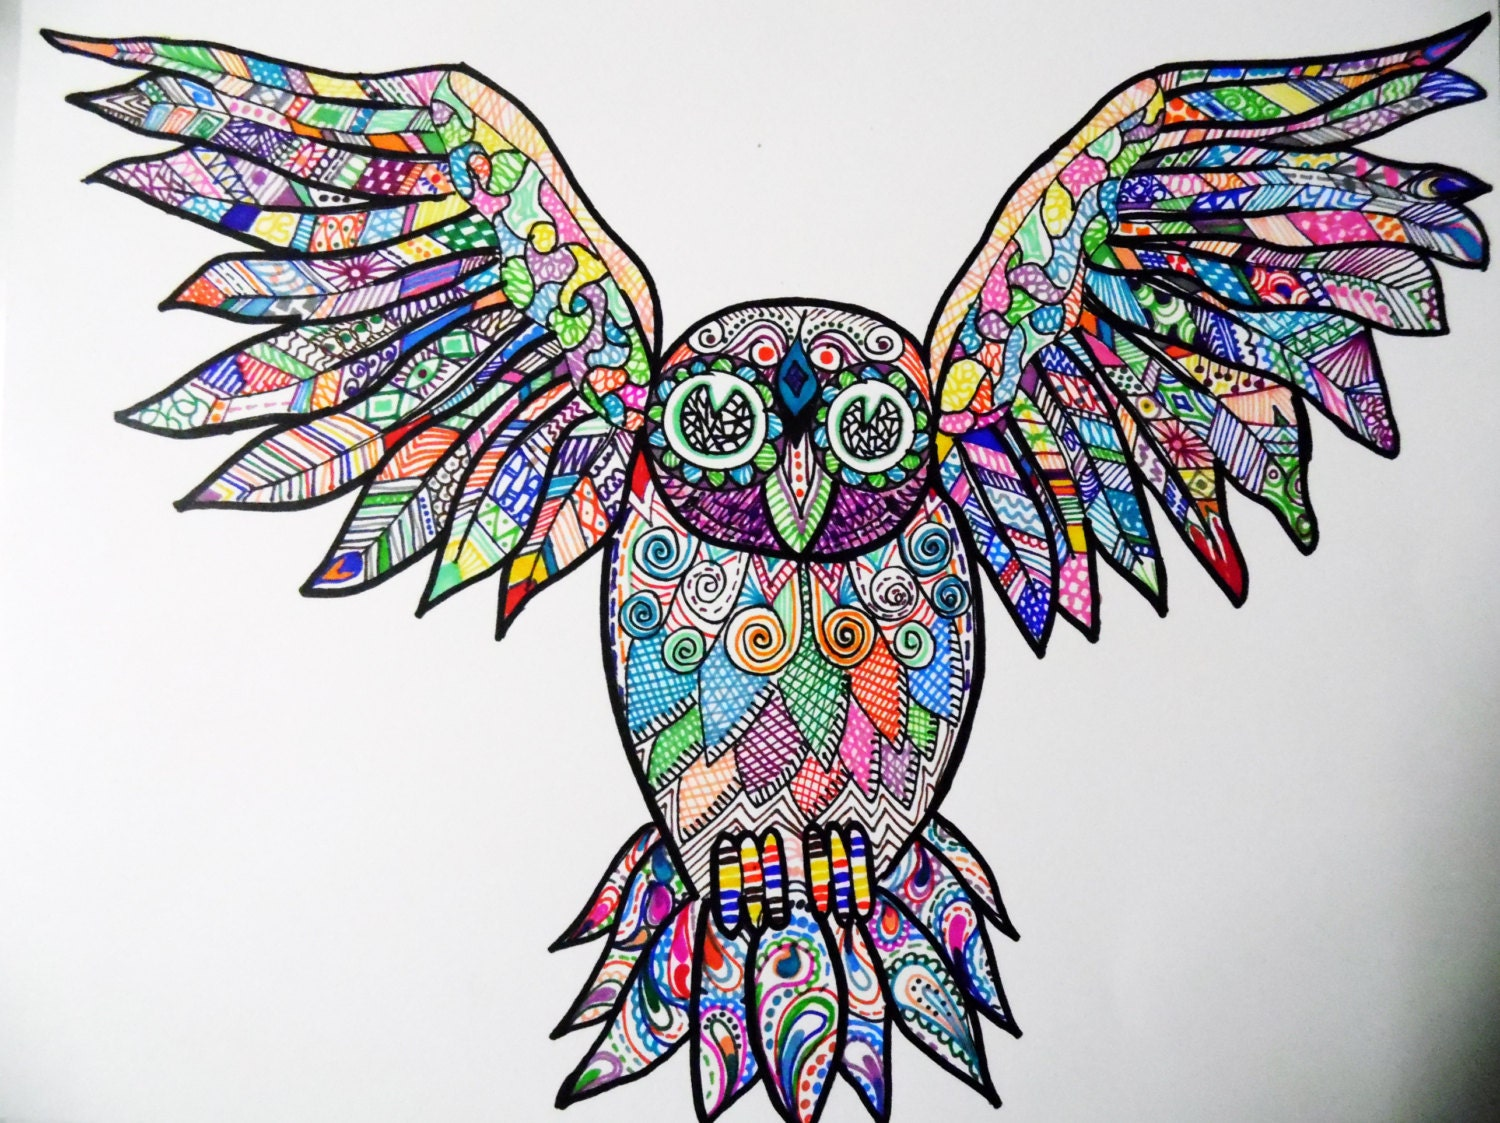 Pics For > Cool Colorful Drawings In Sharpie